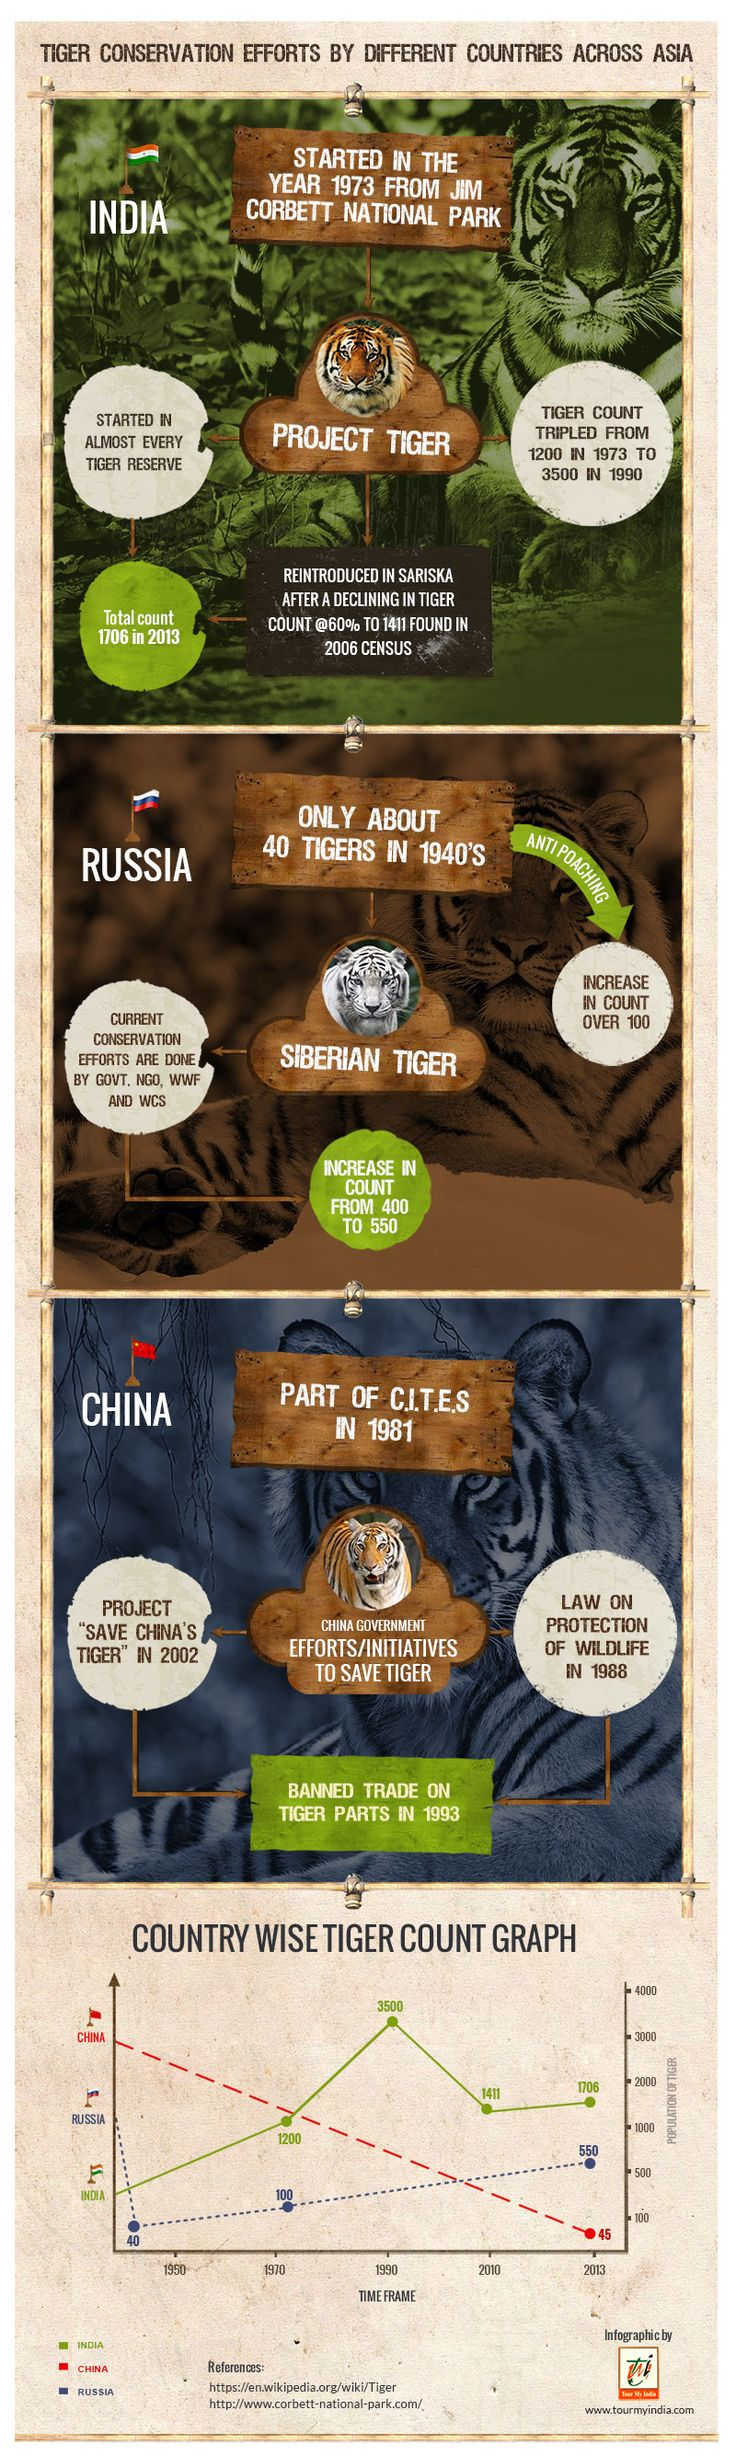 Tiger Conservation Efforts by Different Countries